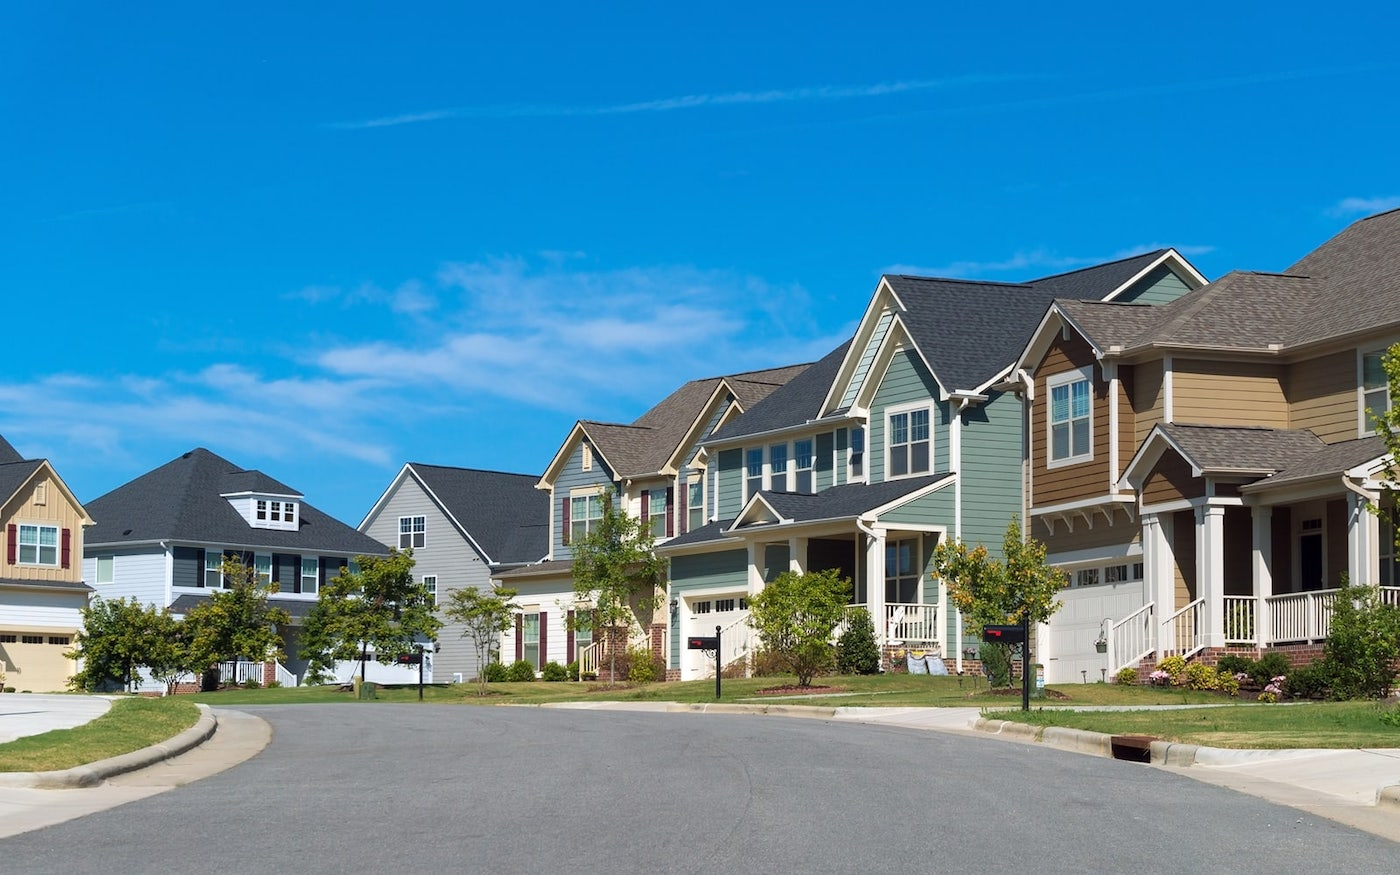 Confused about how to price your home?